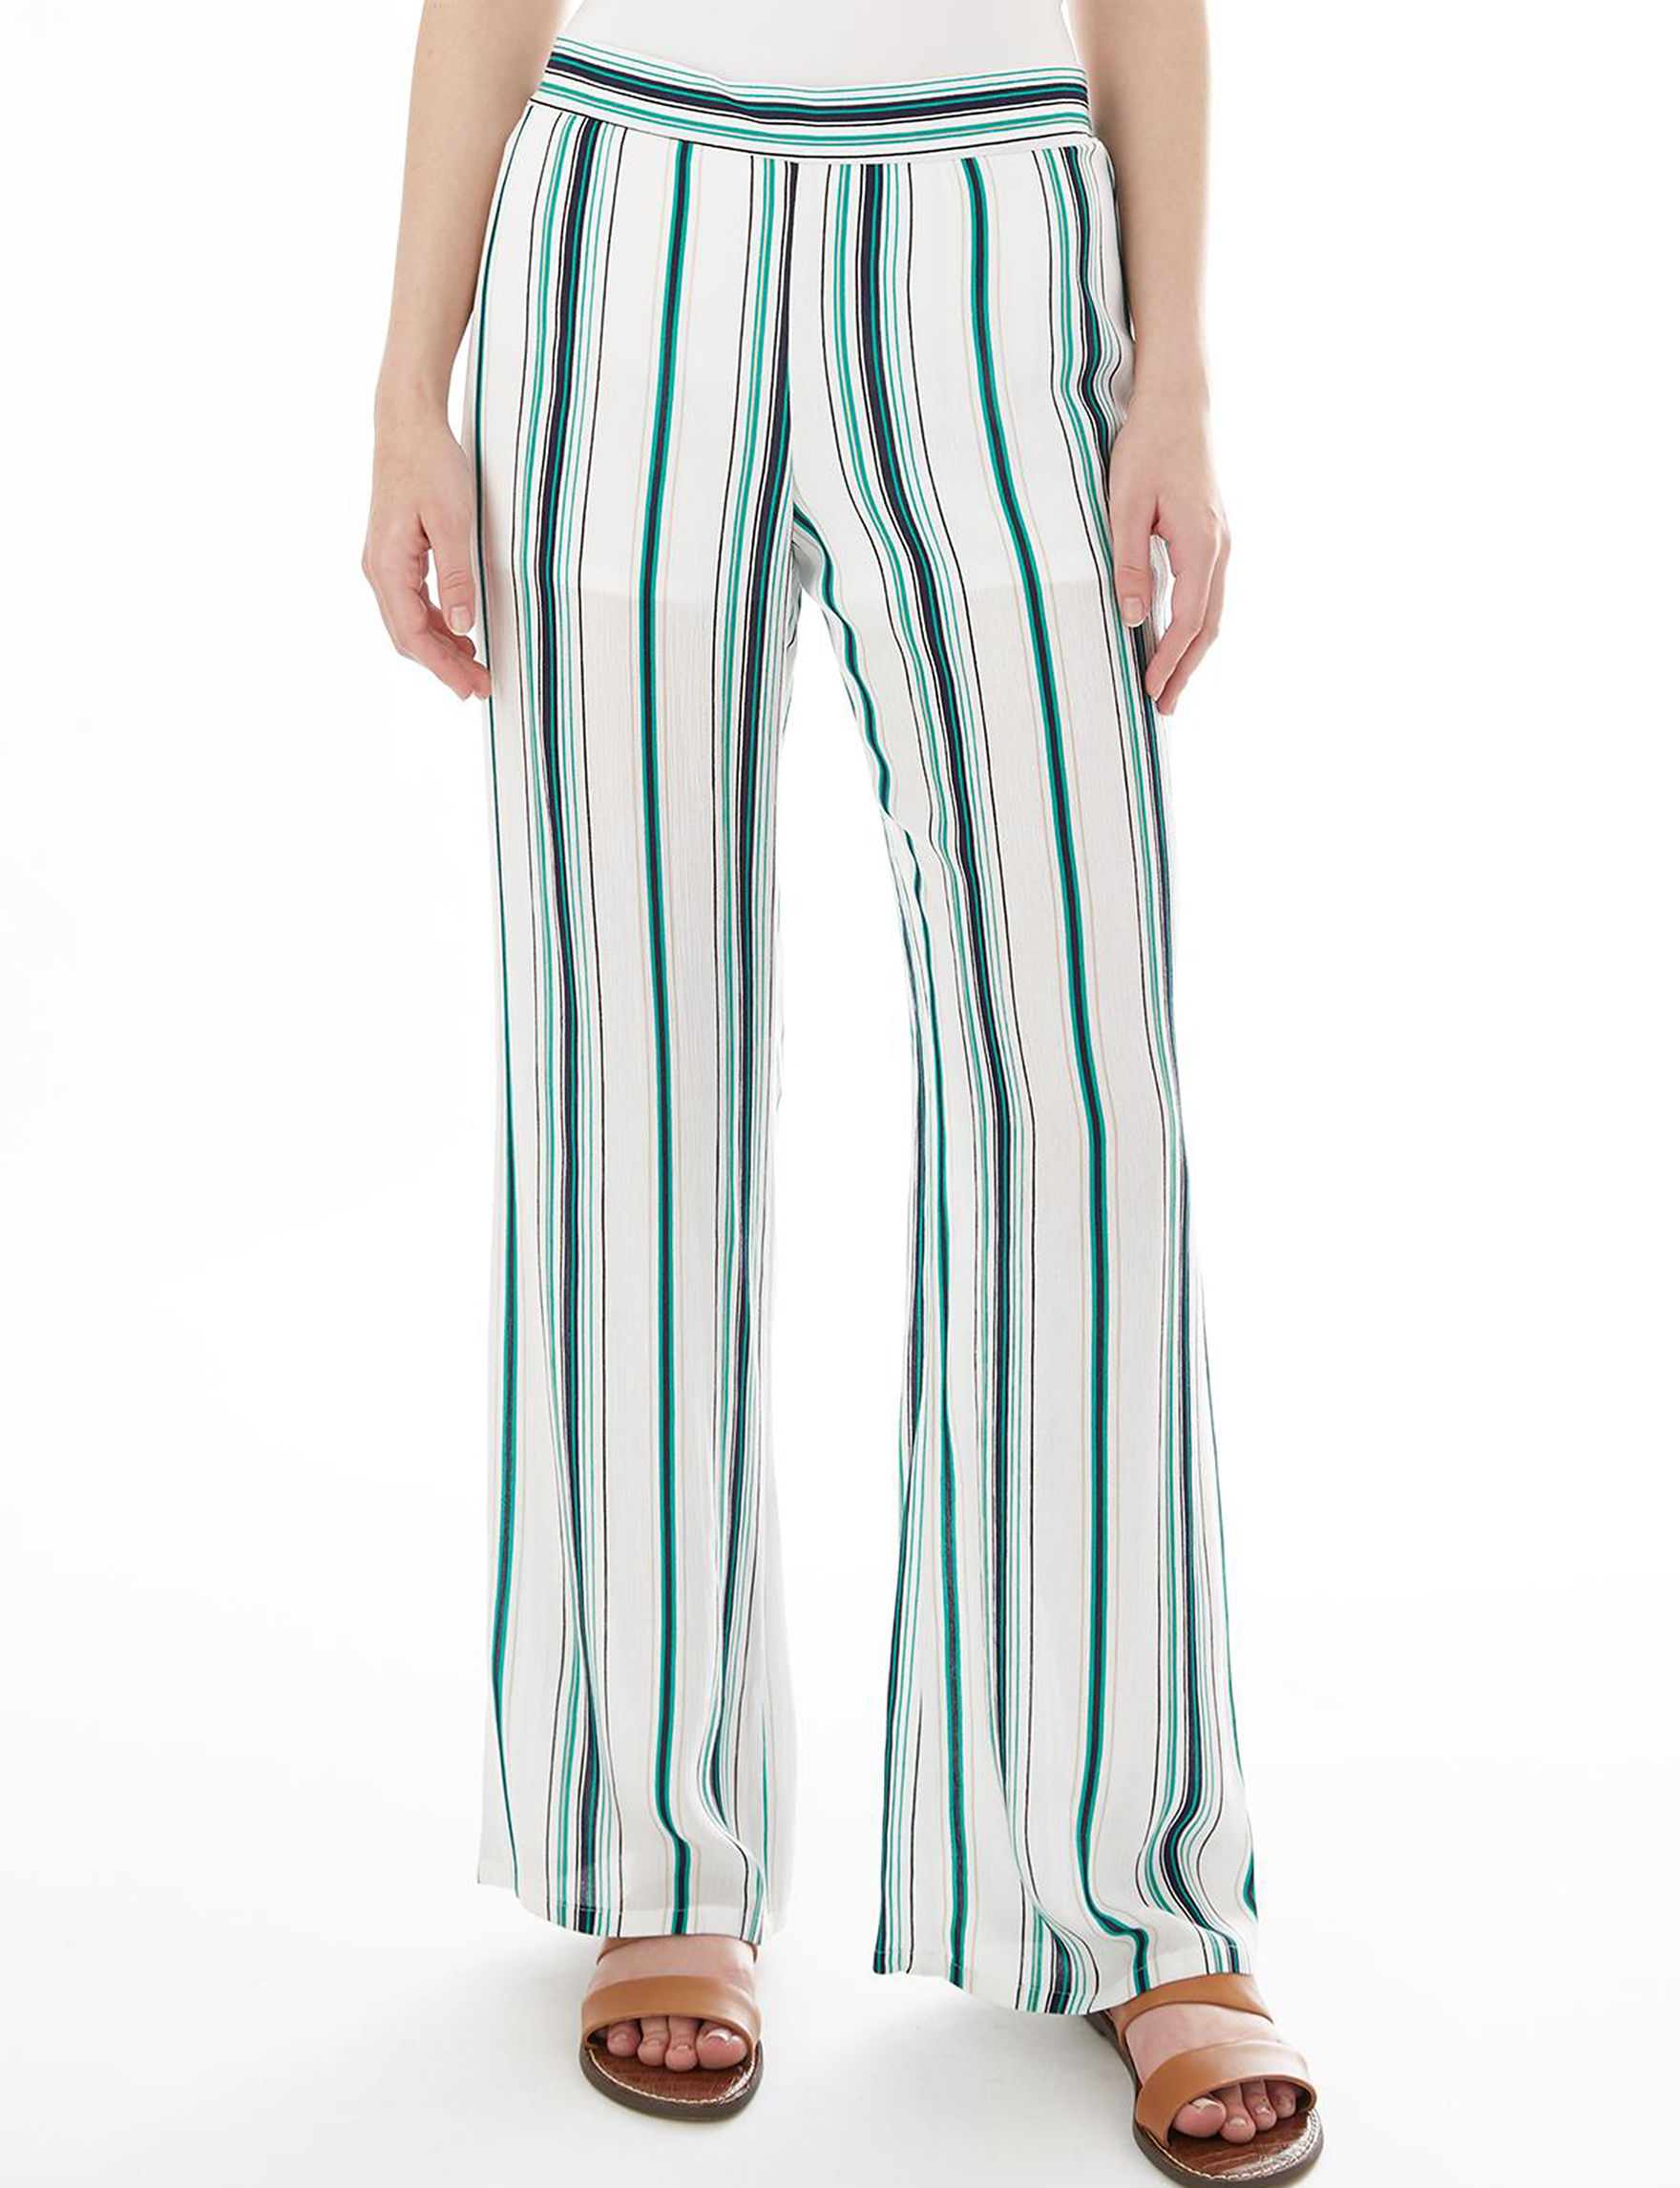 A. Byer Green Stripe Soft Pants